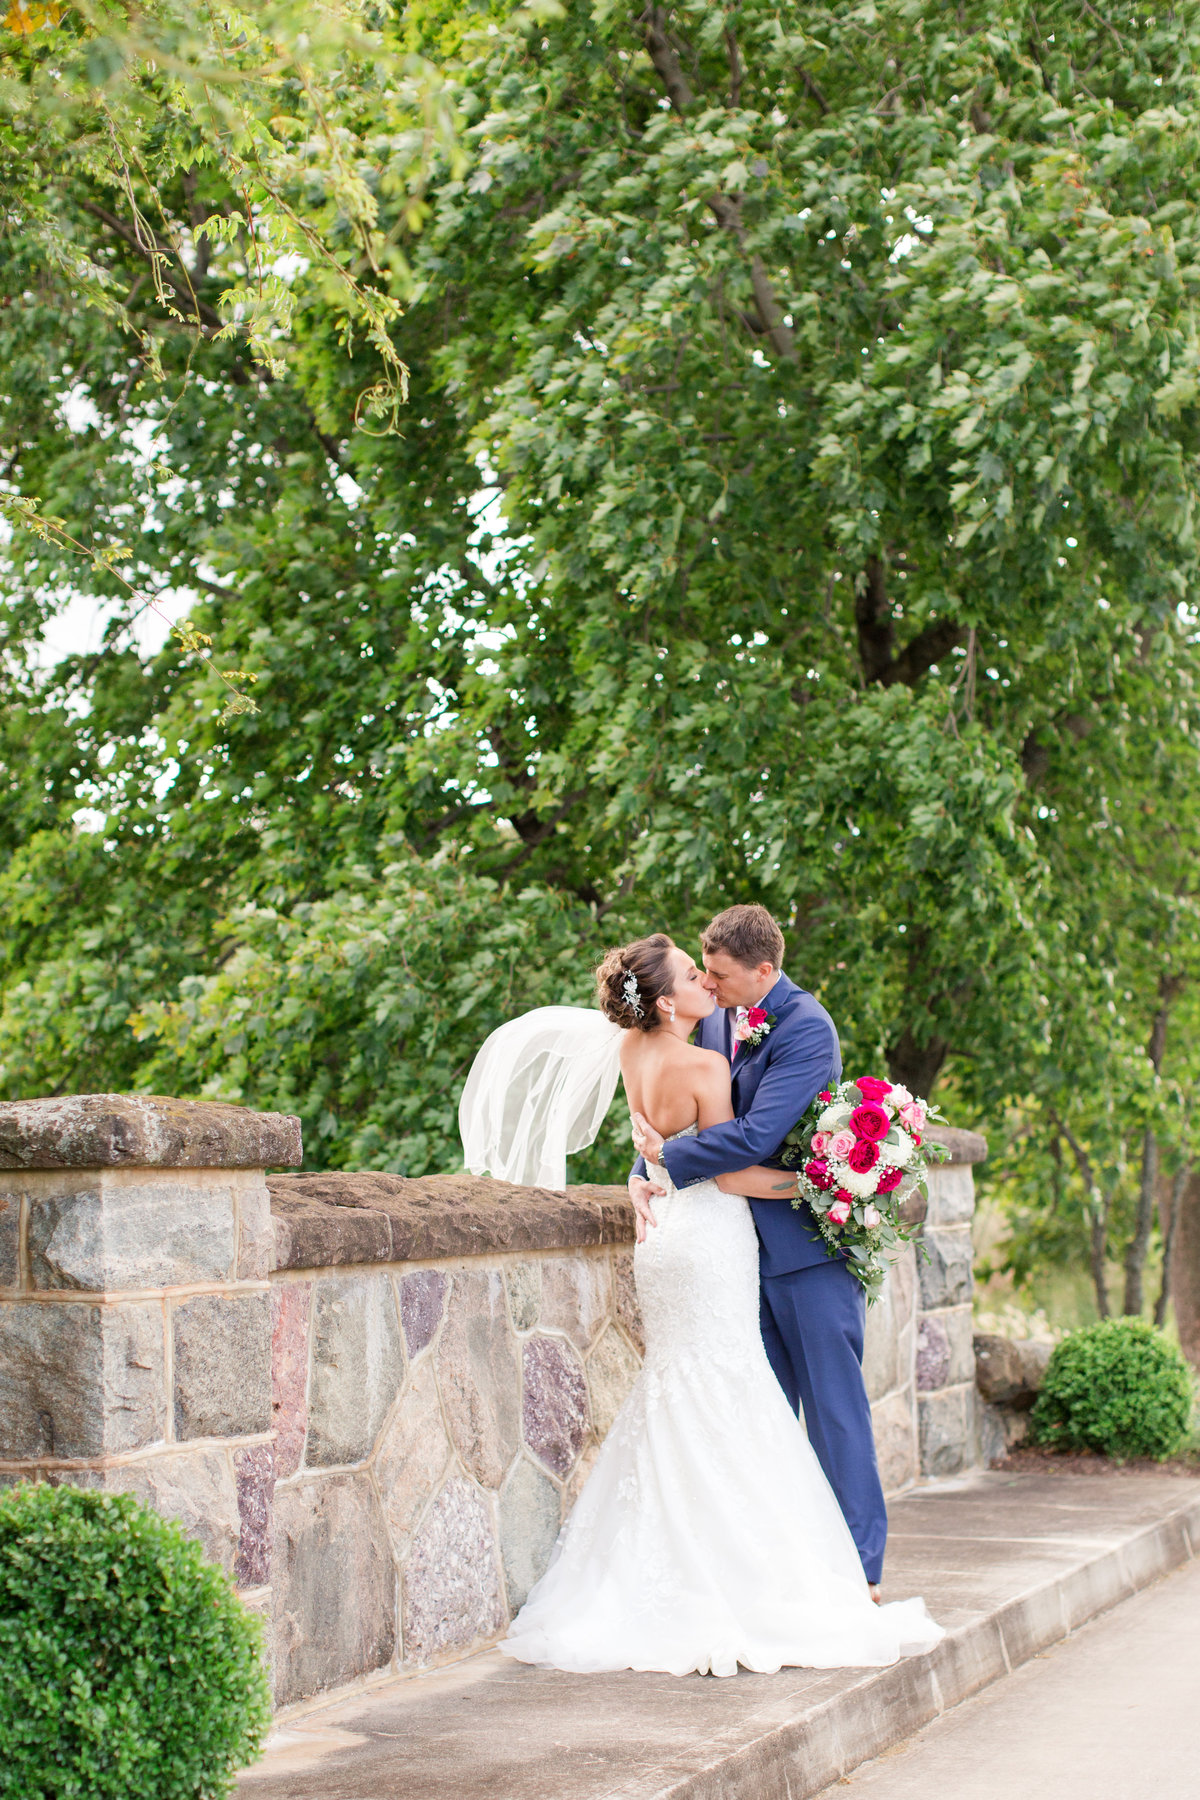 LaurenKearns_FlorhamParkWedding-15